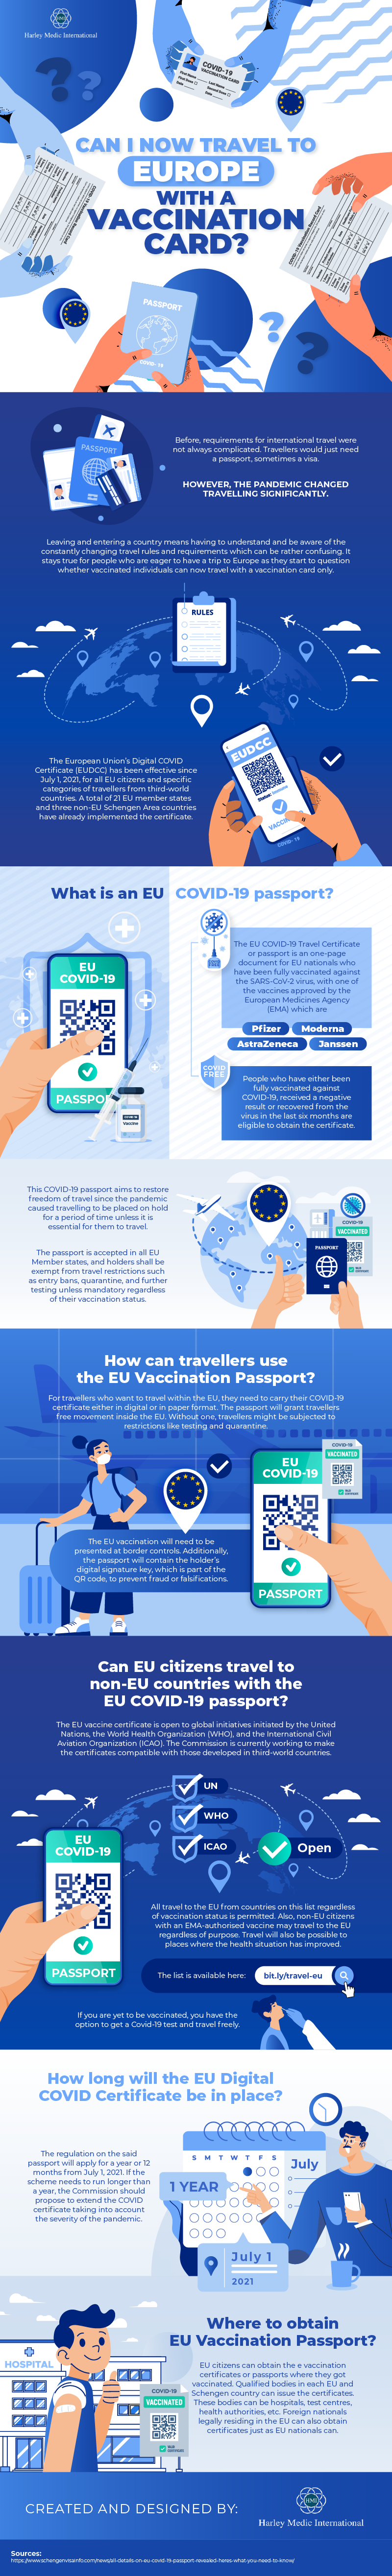 Can I now travel to Europe with a vaccination card